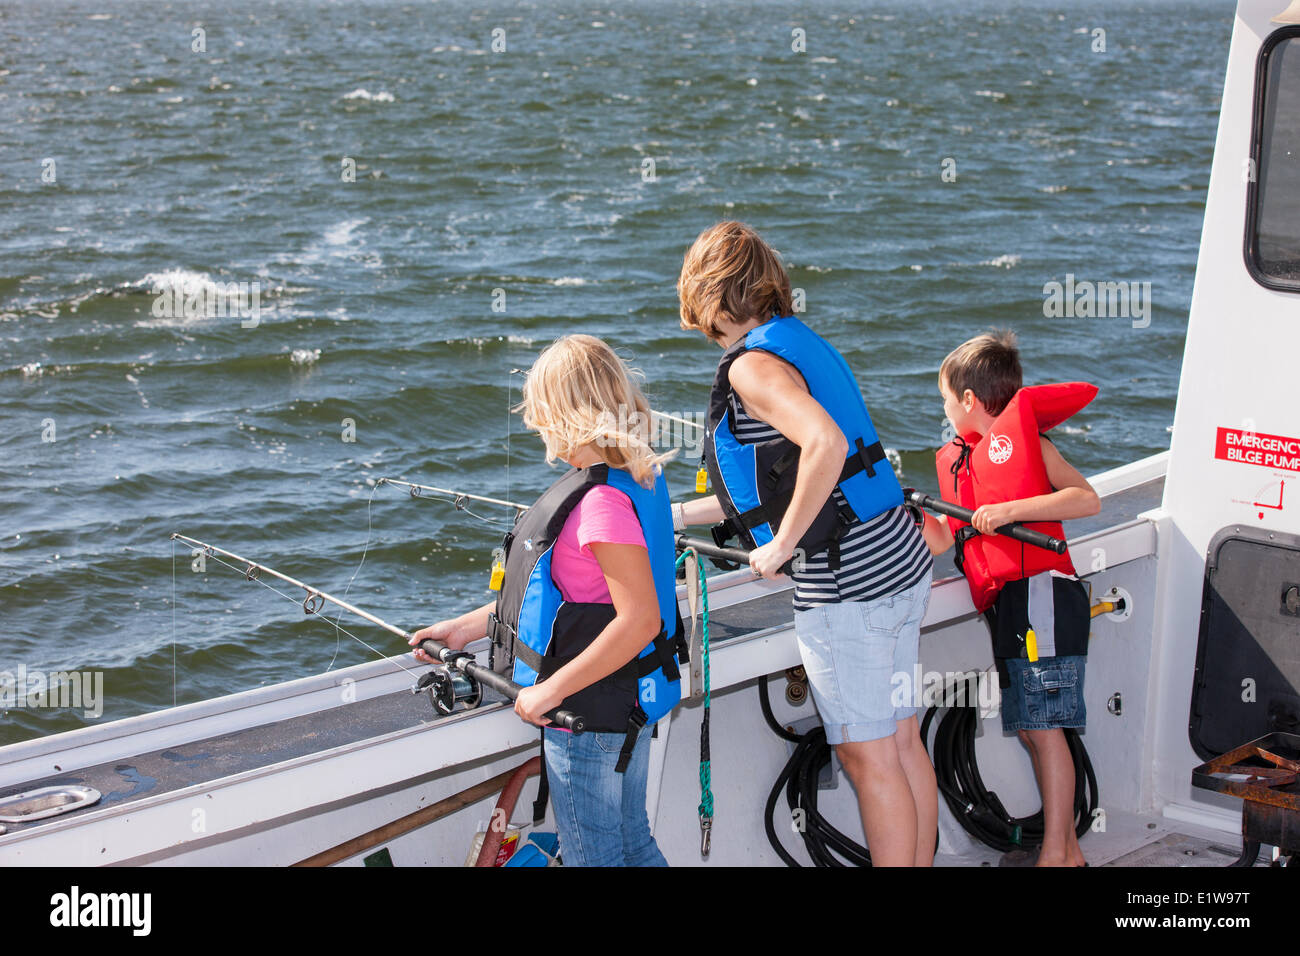 mother, son and daughter deep-sea fishing, Northport, Prince Edward Island, Canada - Stock Image